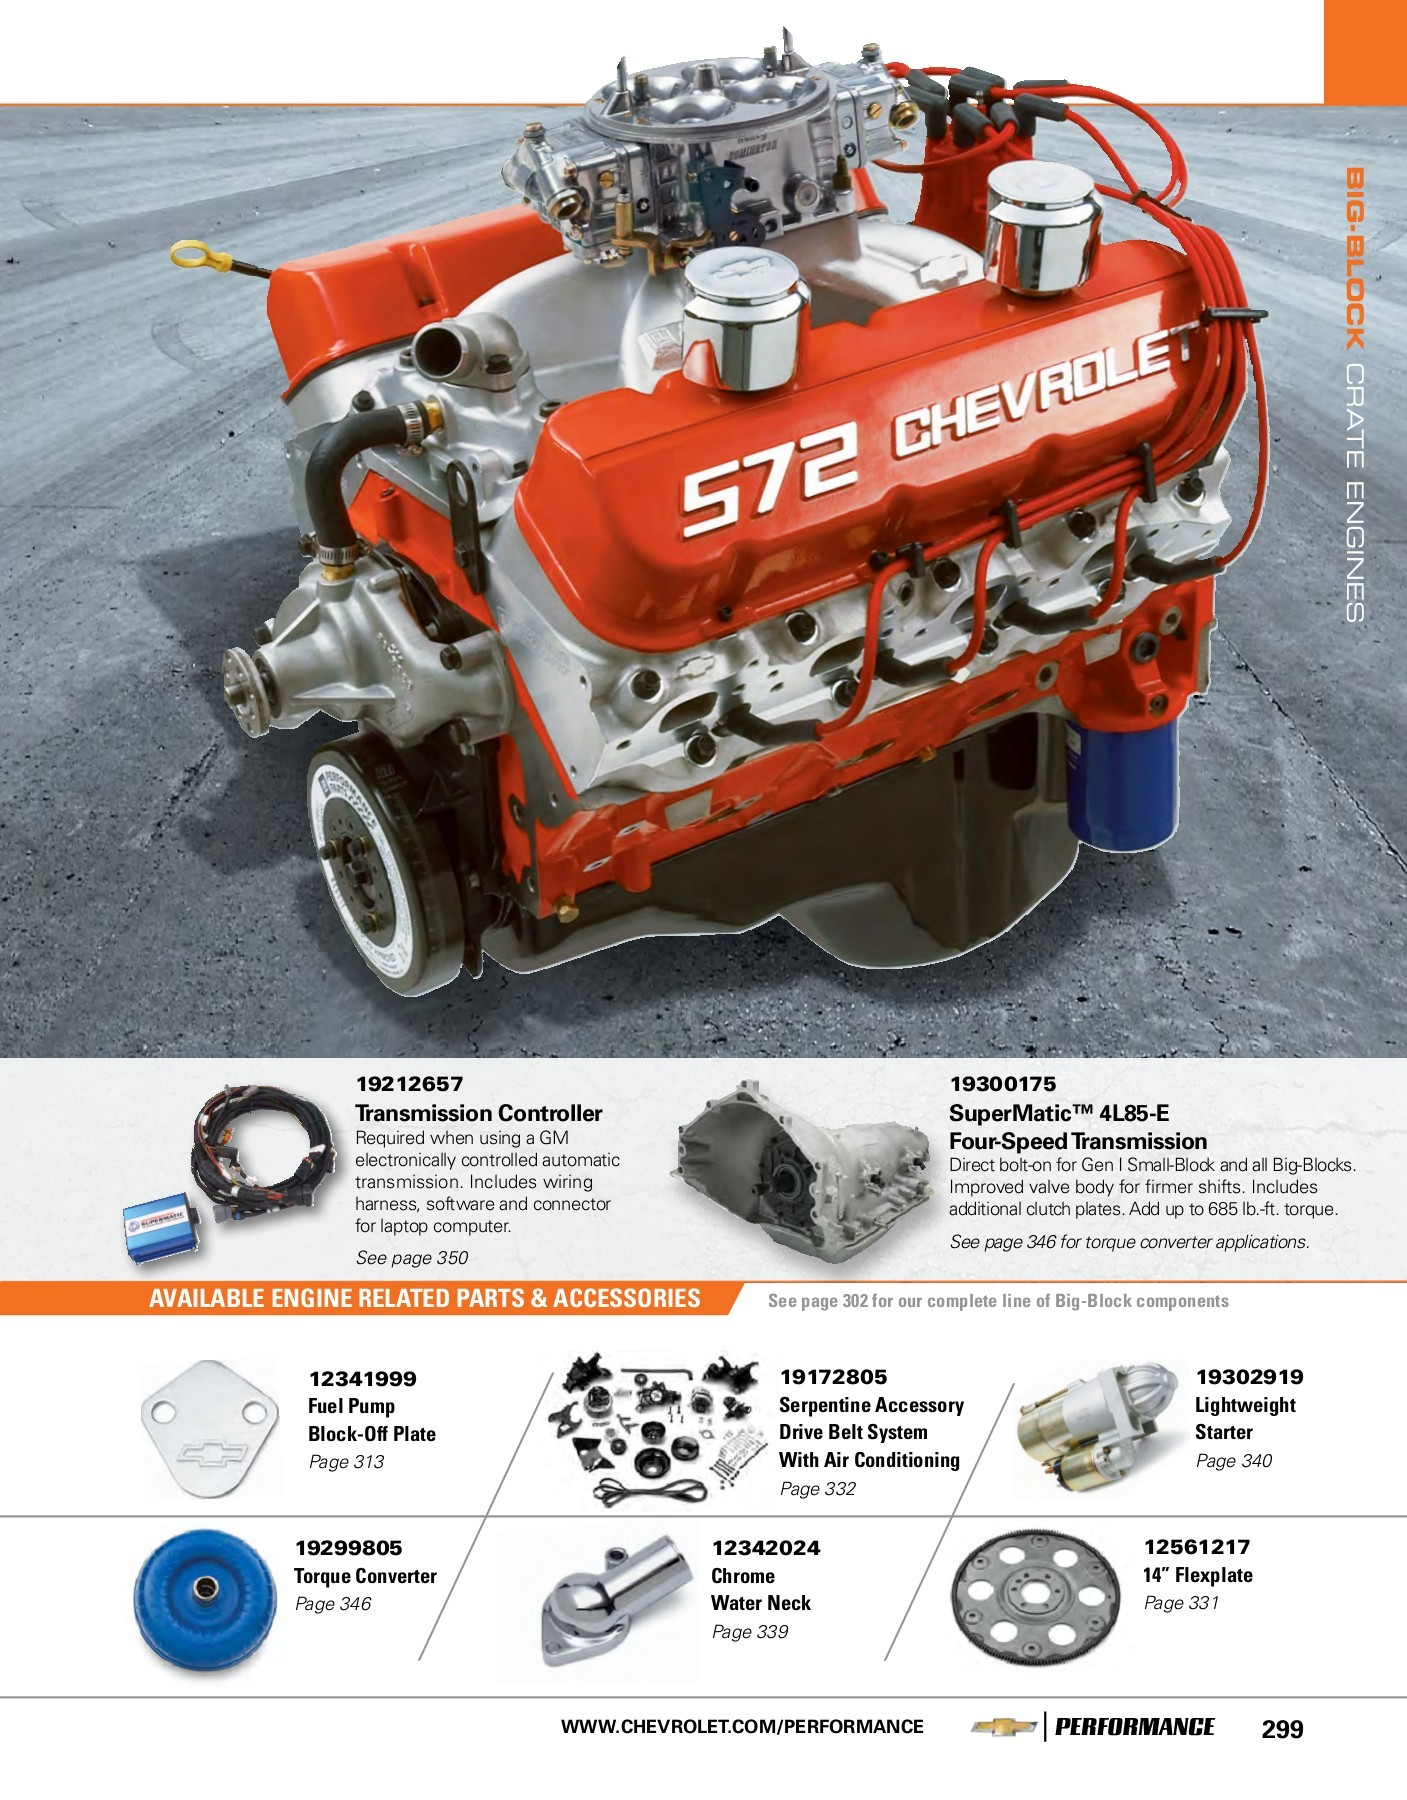 hight resolution of chevrolet performance full performance parts catalog 2015 pages 301 350 text version fliphtml5